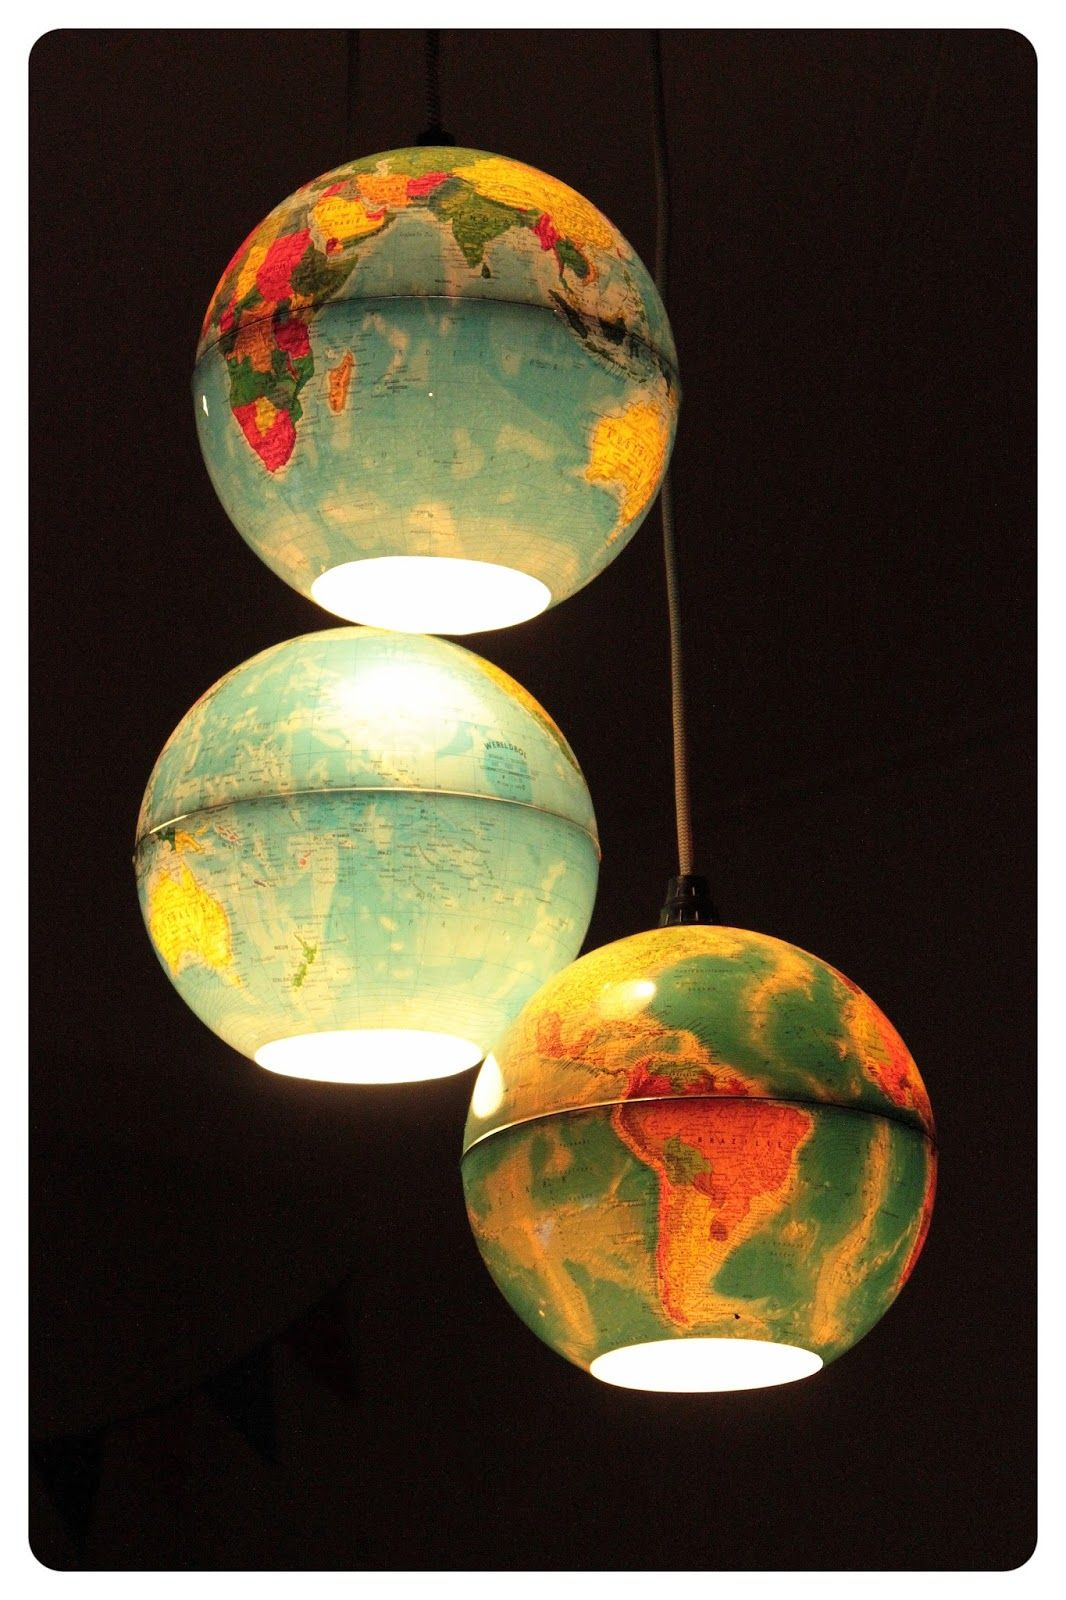 Diy Lampe Schlafzimmer Wereldbol Diy Lamp Luster Upcycling Lamps Lights